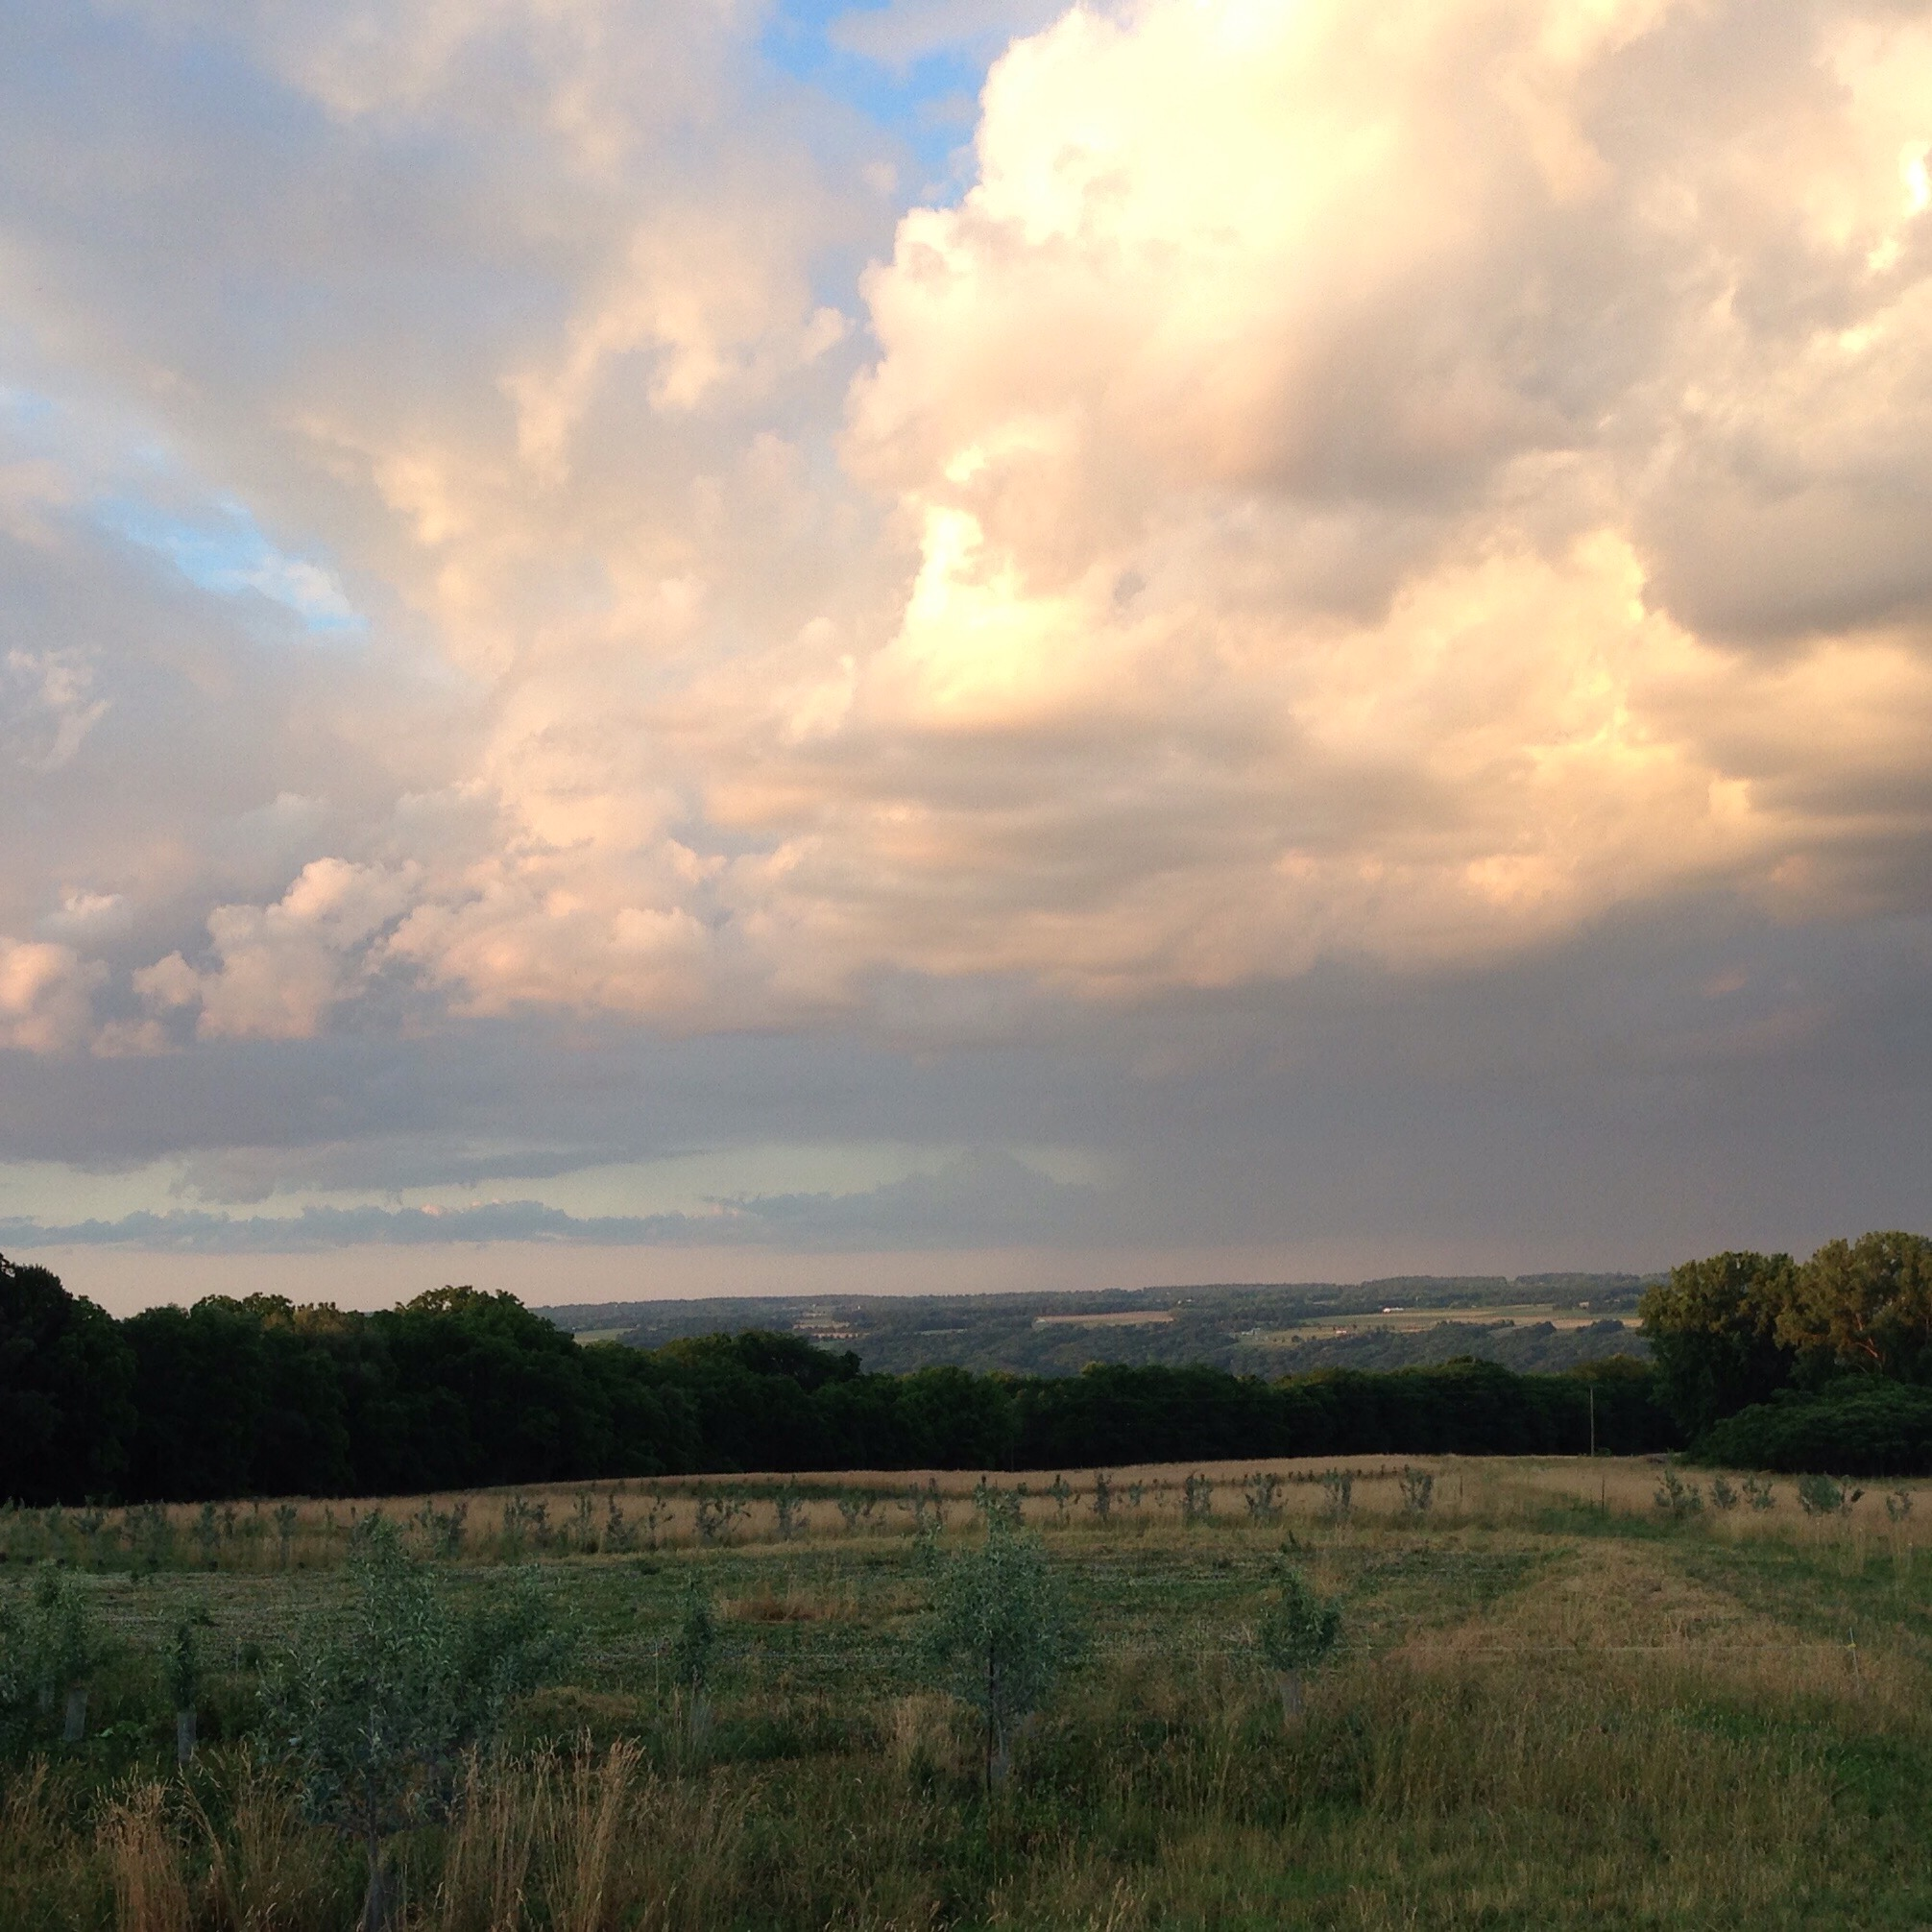 Brown grass, resilient clover and great clouds: signs of a dry year